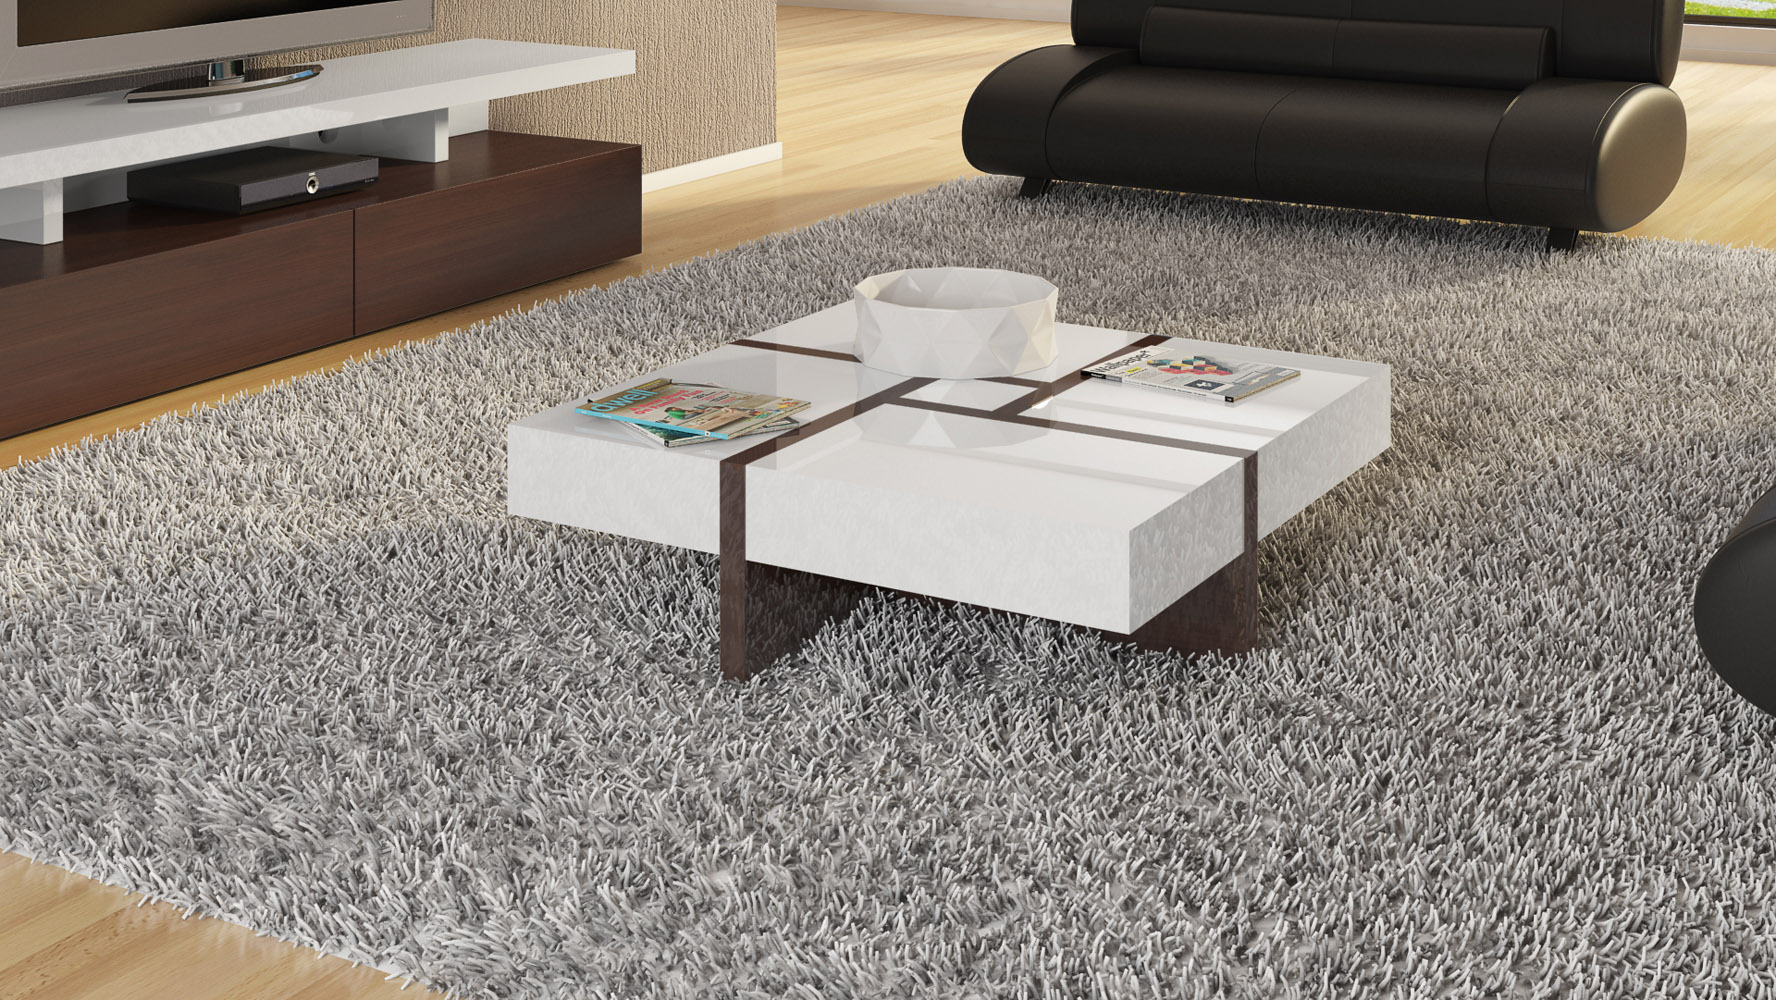 Mcintosh High Gloss Coffee Table With Storage   White Square | Zuri  Furniture